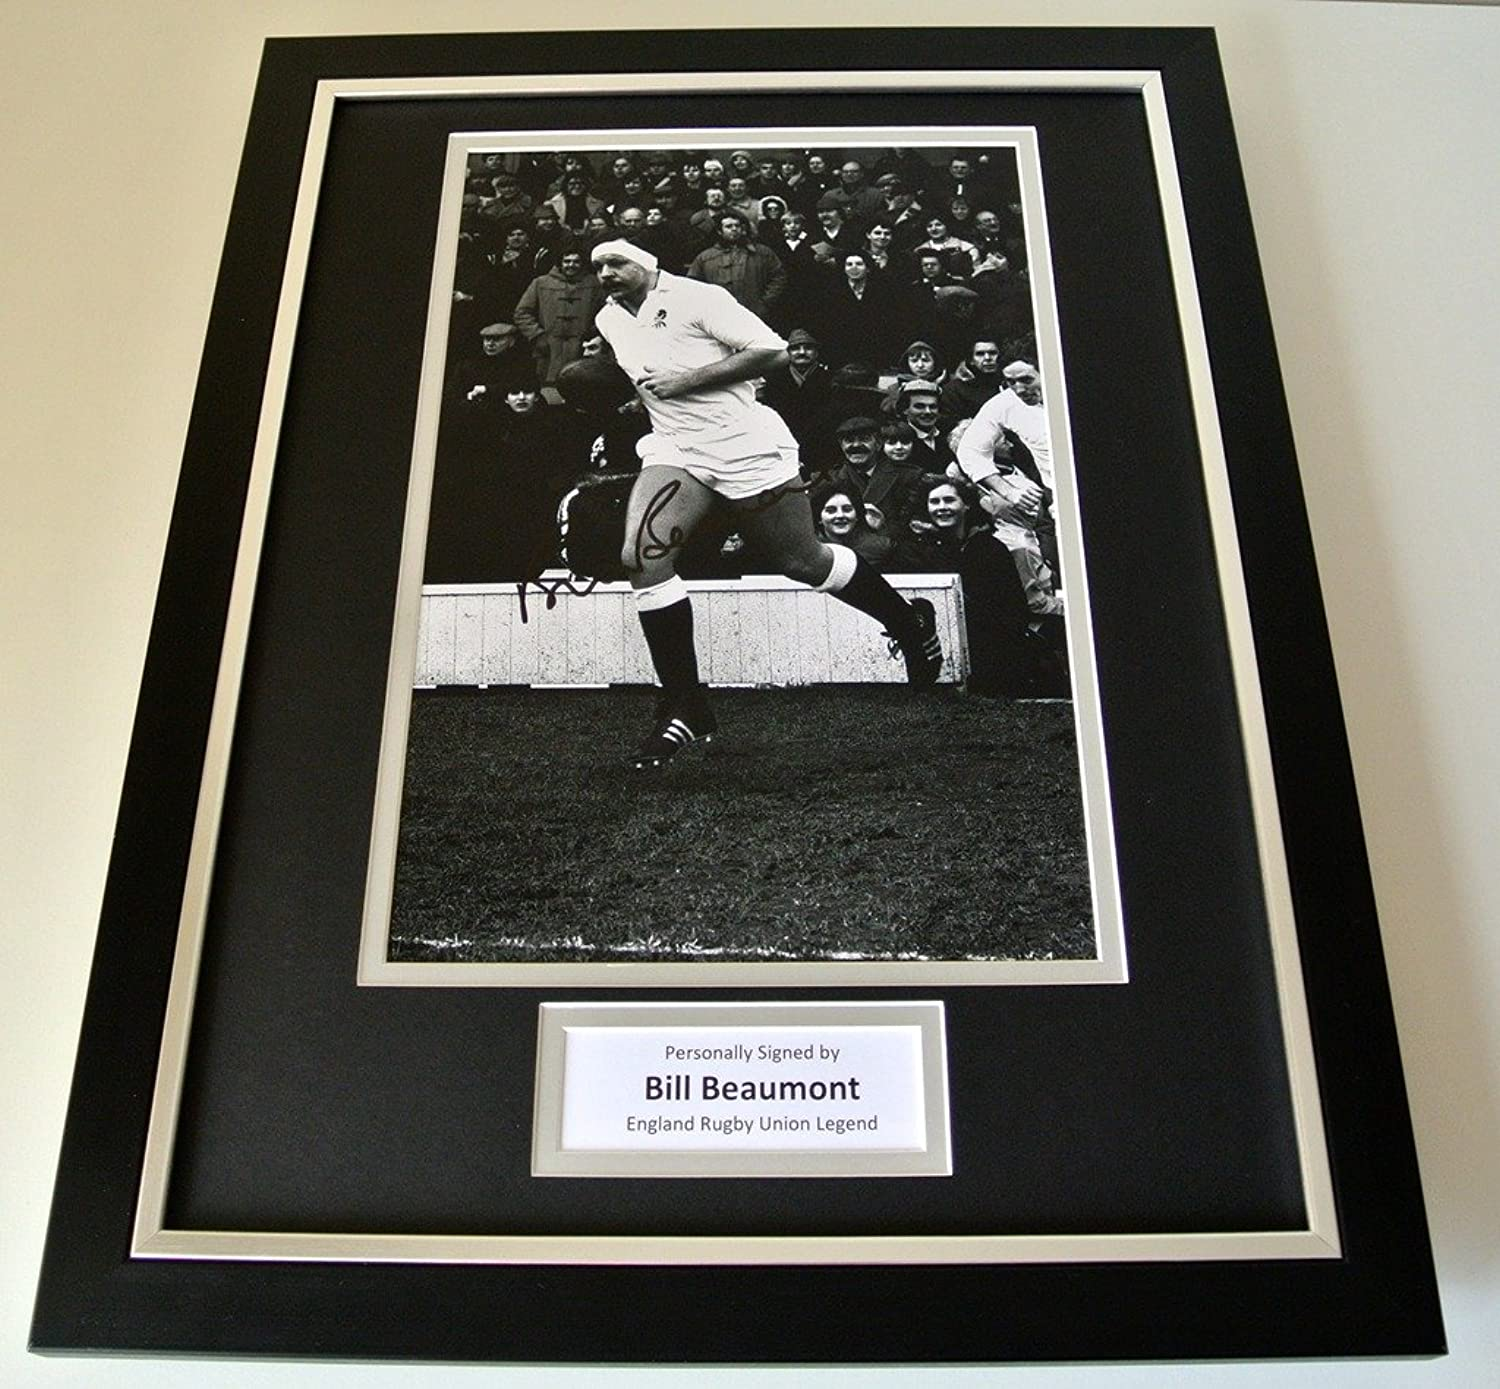 Sportagraphs Bill Beaumont Signed FRAMED 16x12 Photo Mount display England Rugby PROOF COA PERFECT GIFT